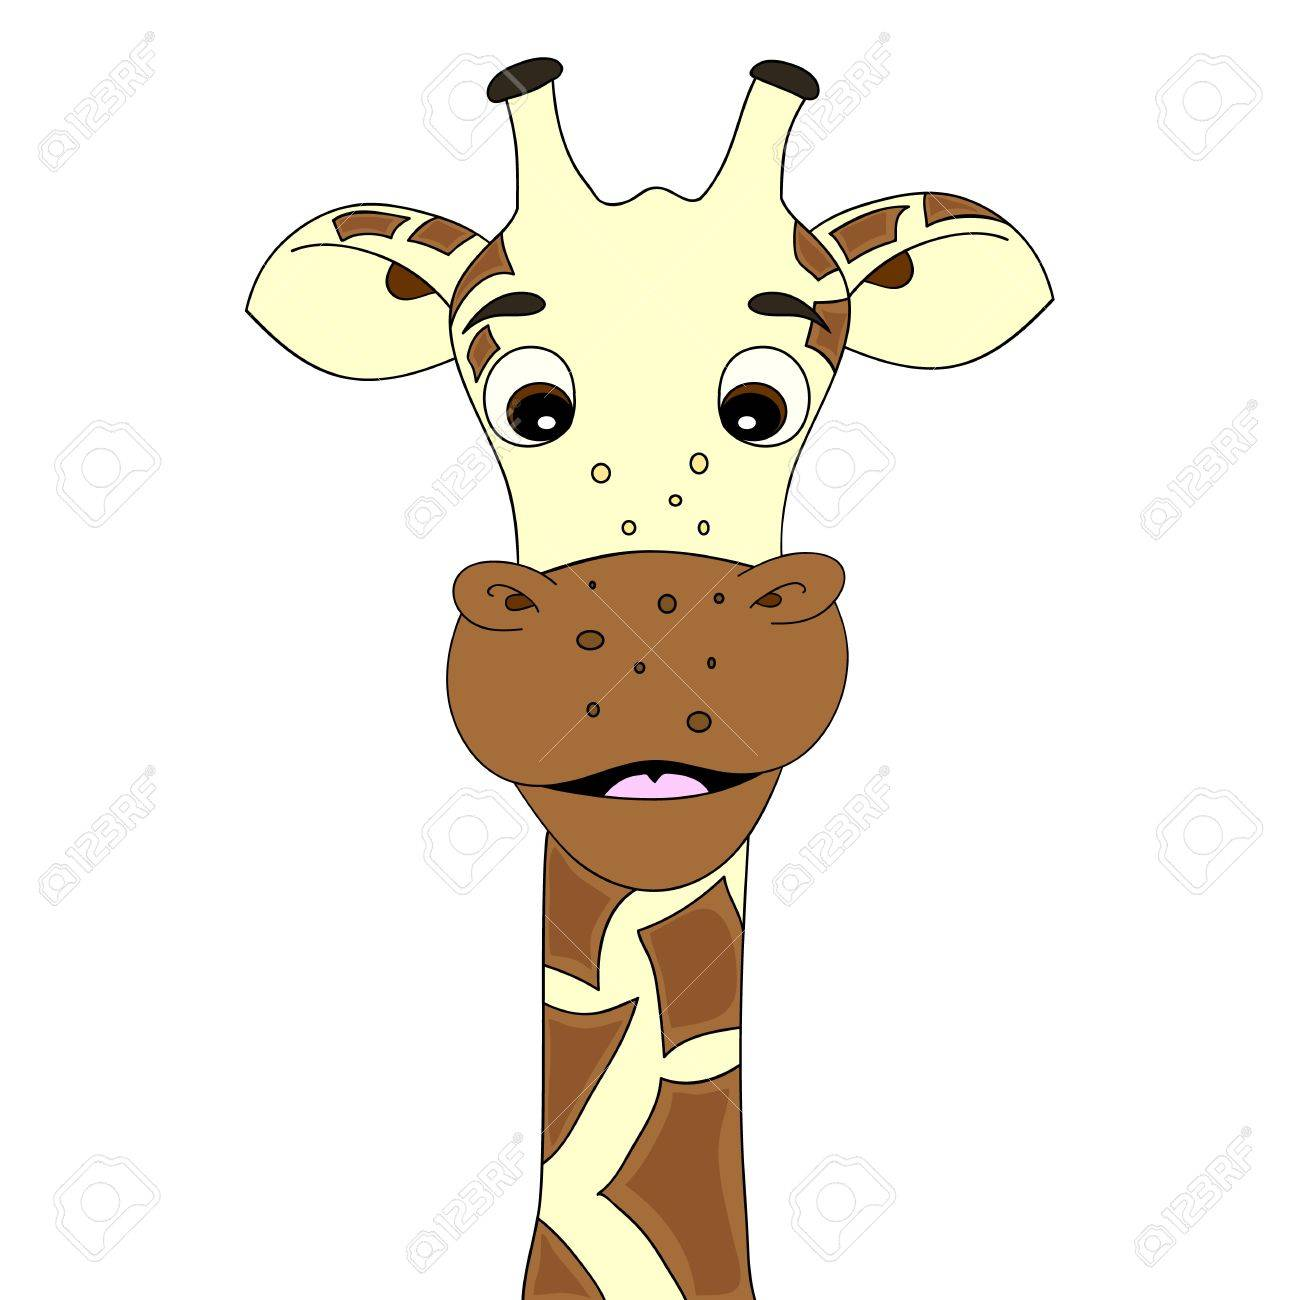 Giraffe cartoon Stock Vector - 10271024